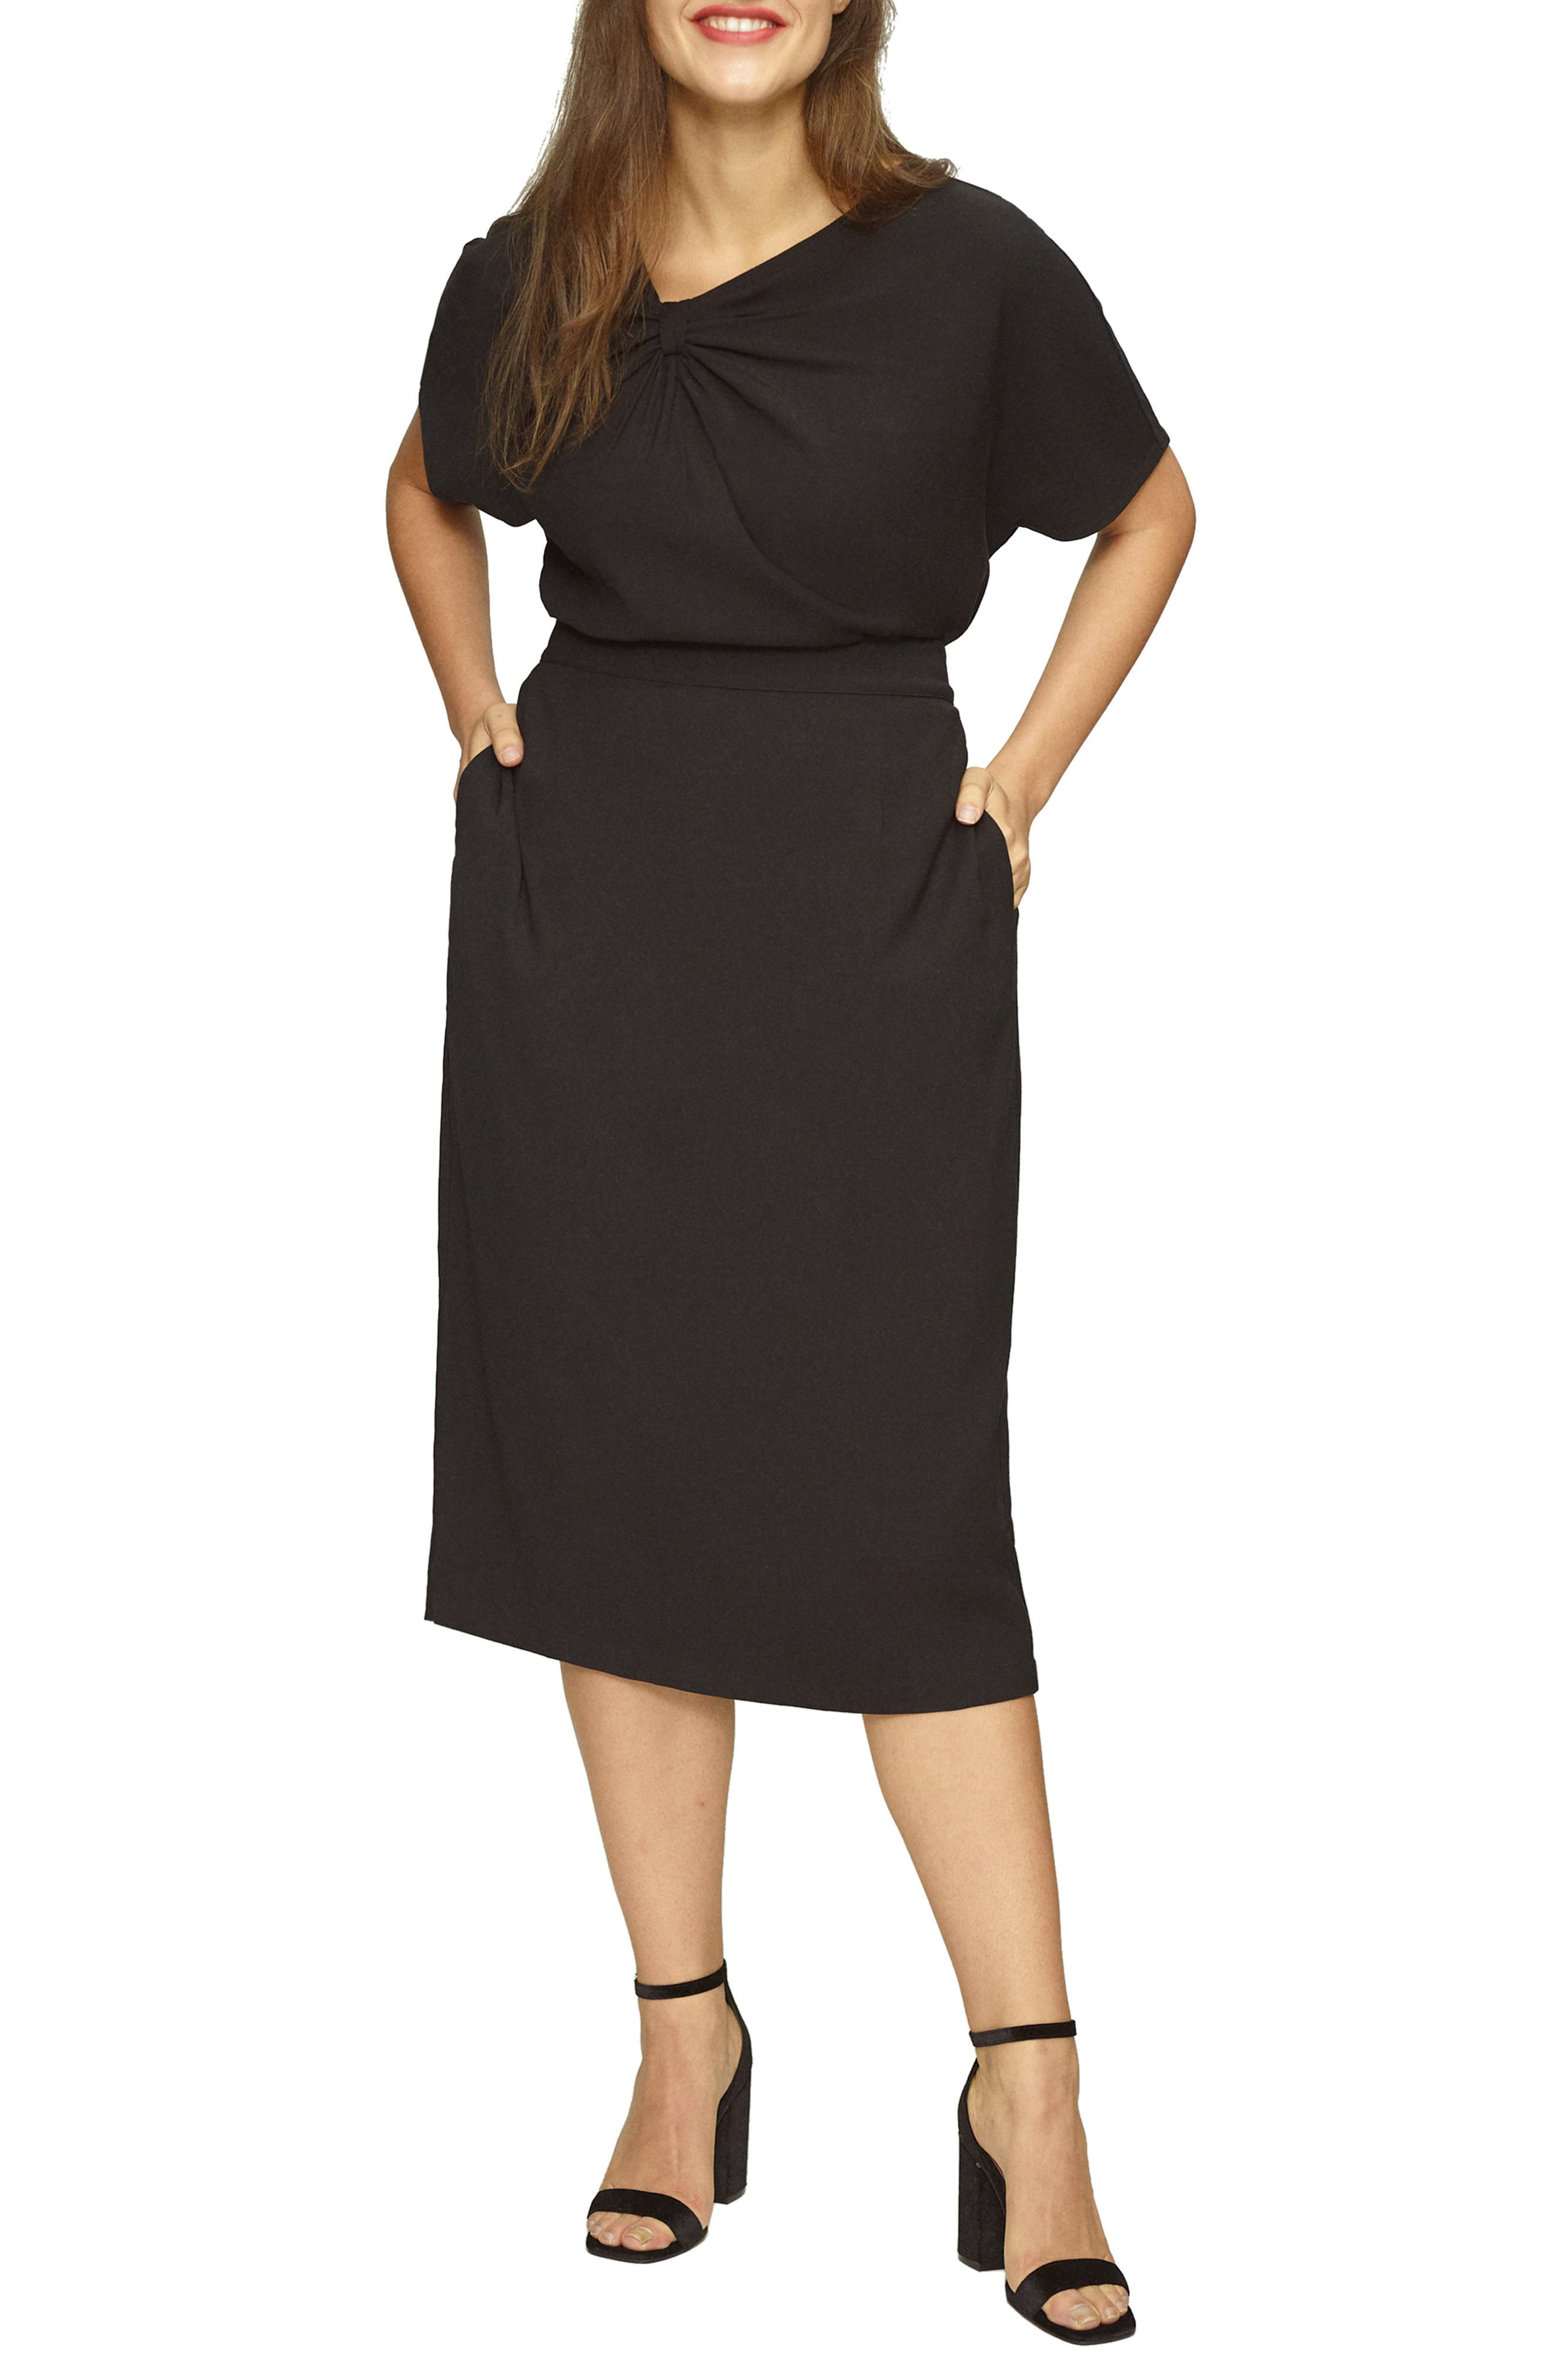 UNIVERSAL STANDARD Twill Pencil Skirt, Main, color, 001